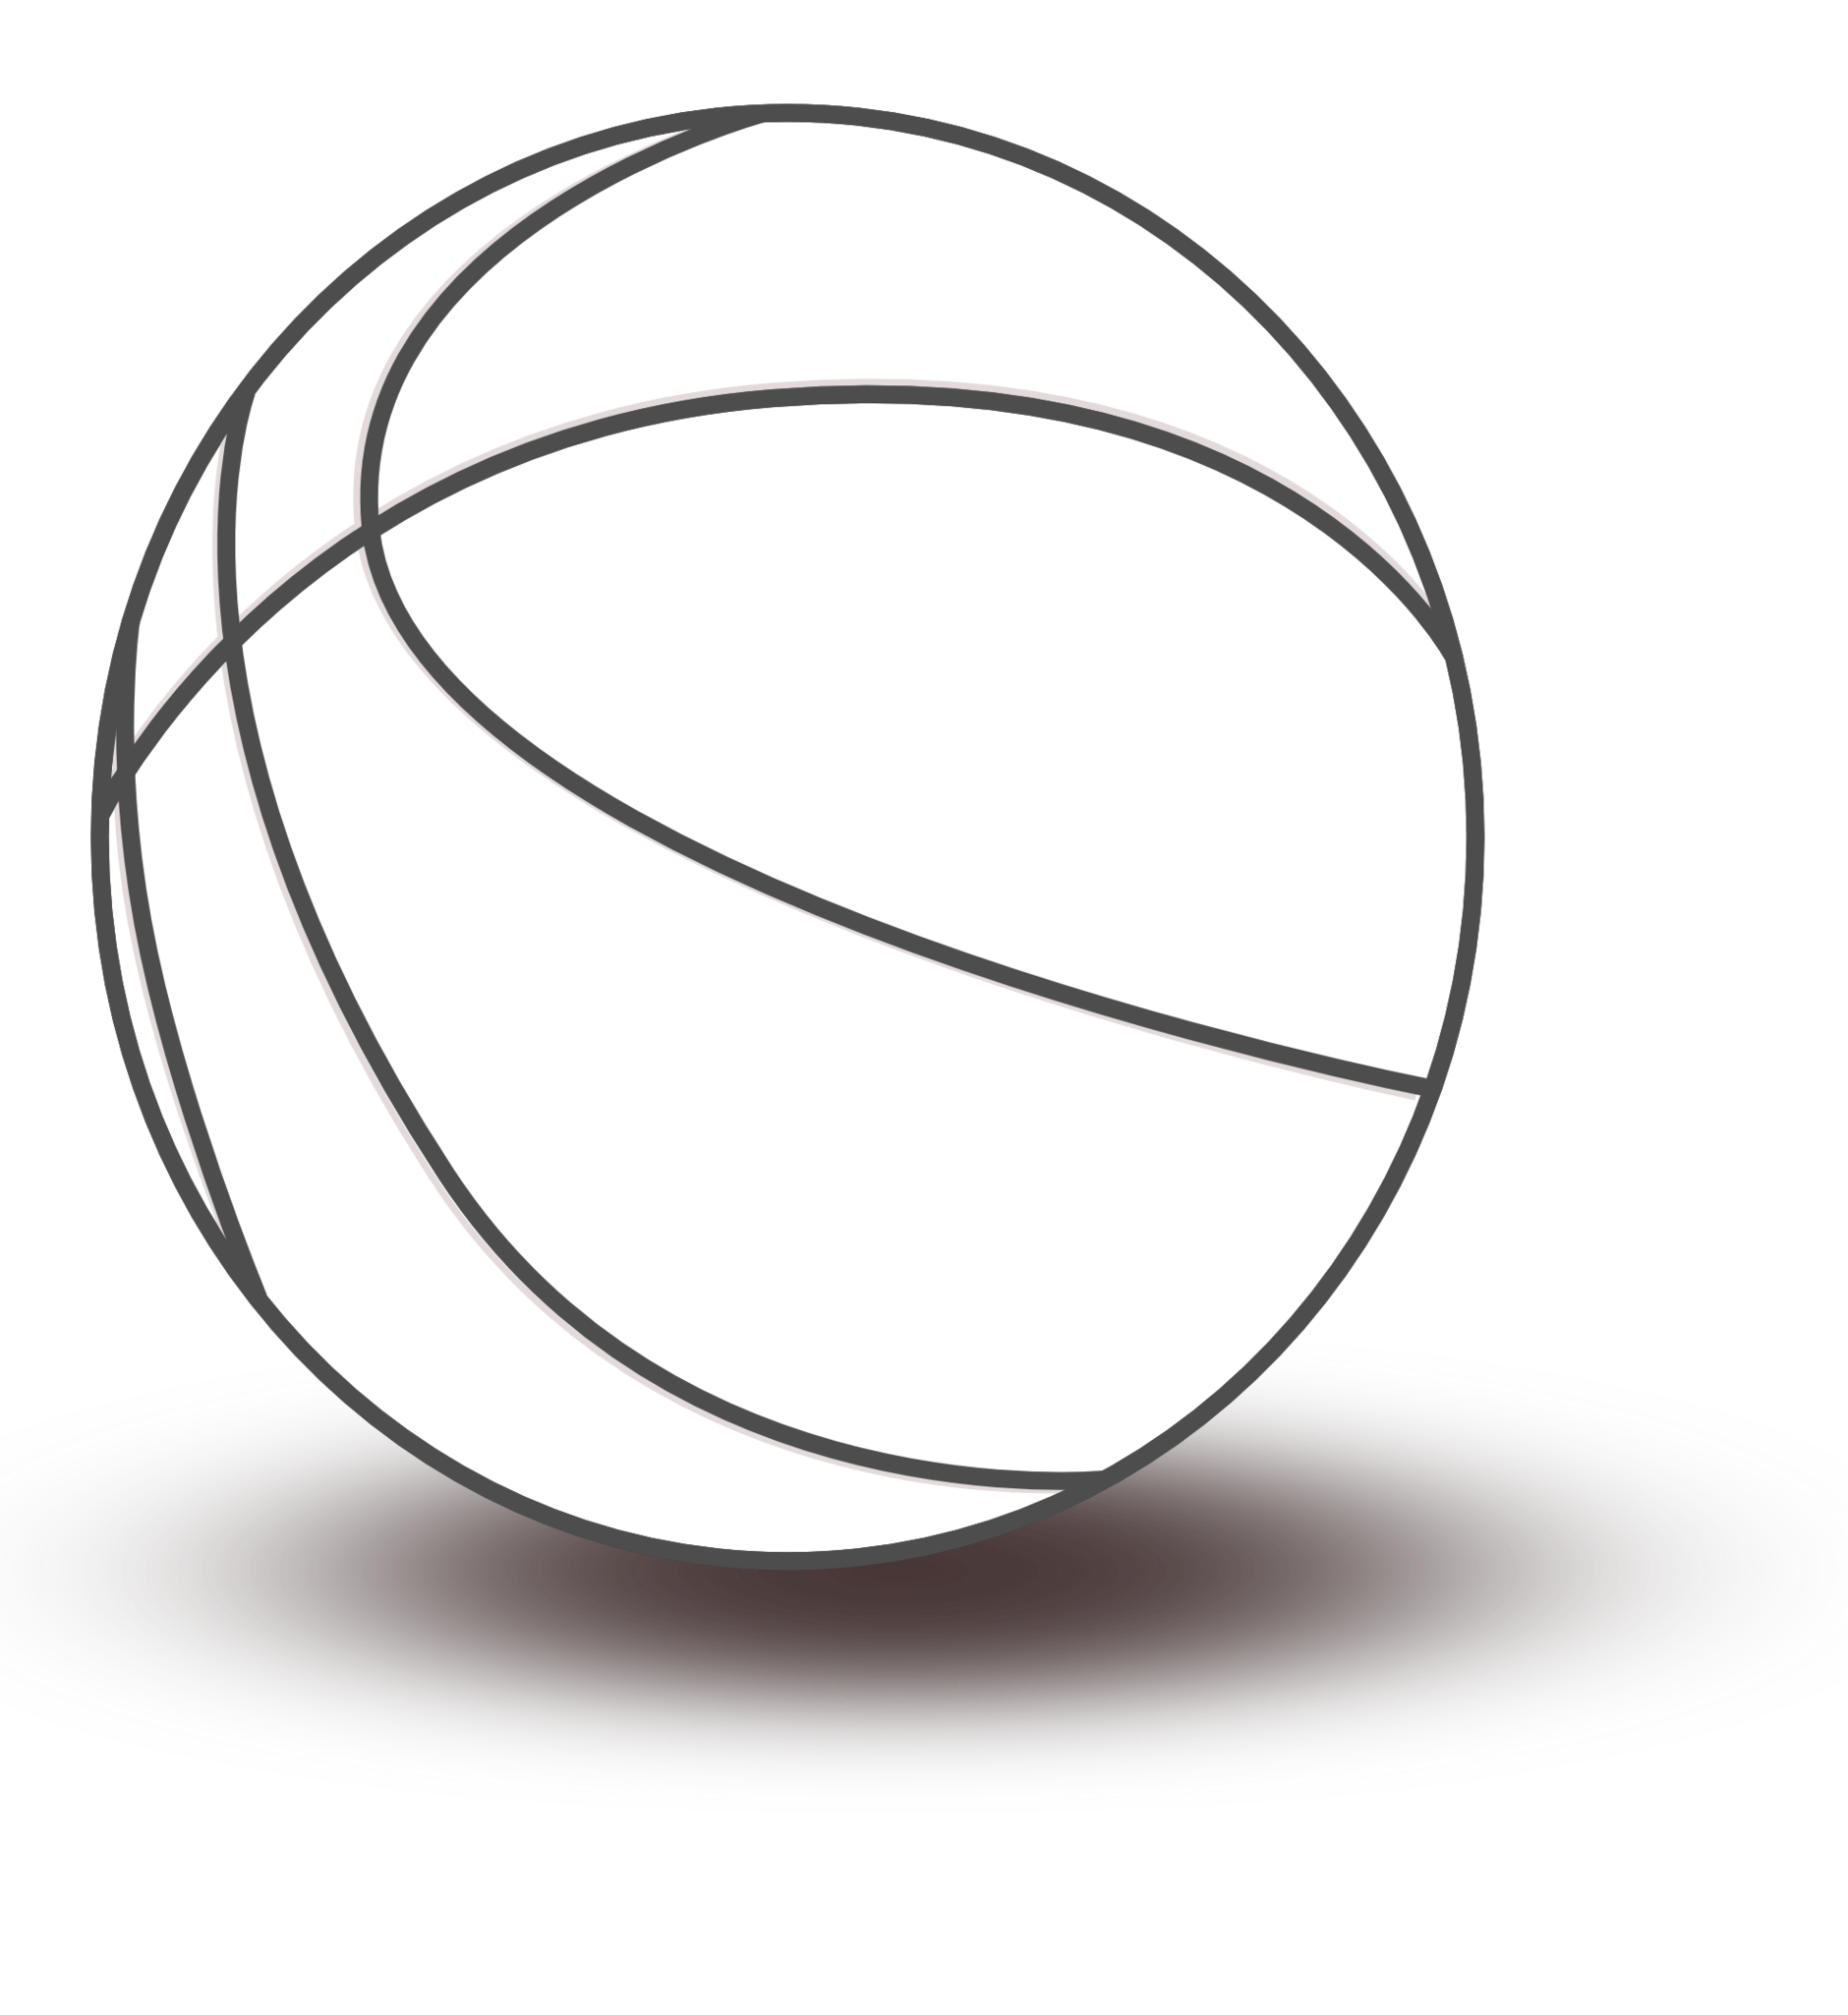 1880x2050 Basketball Black And White Black And White Basketball Pictures